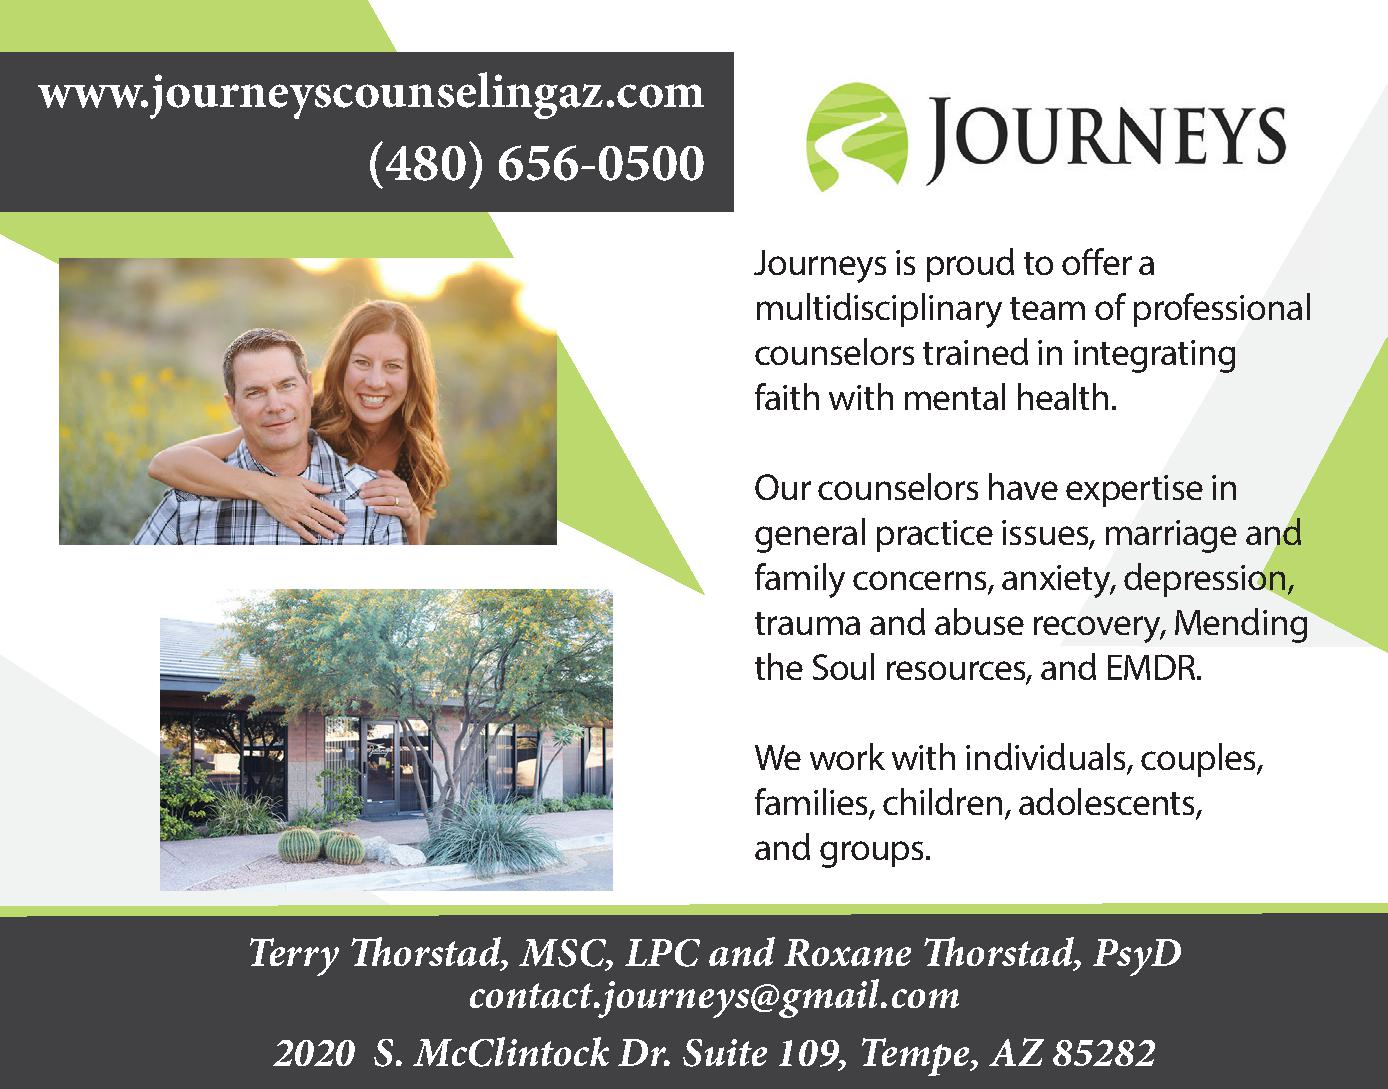 Journeys Counseling Center